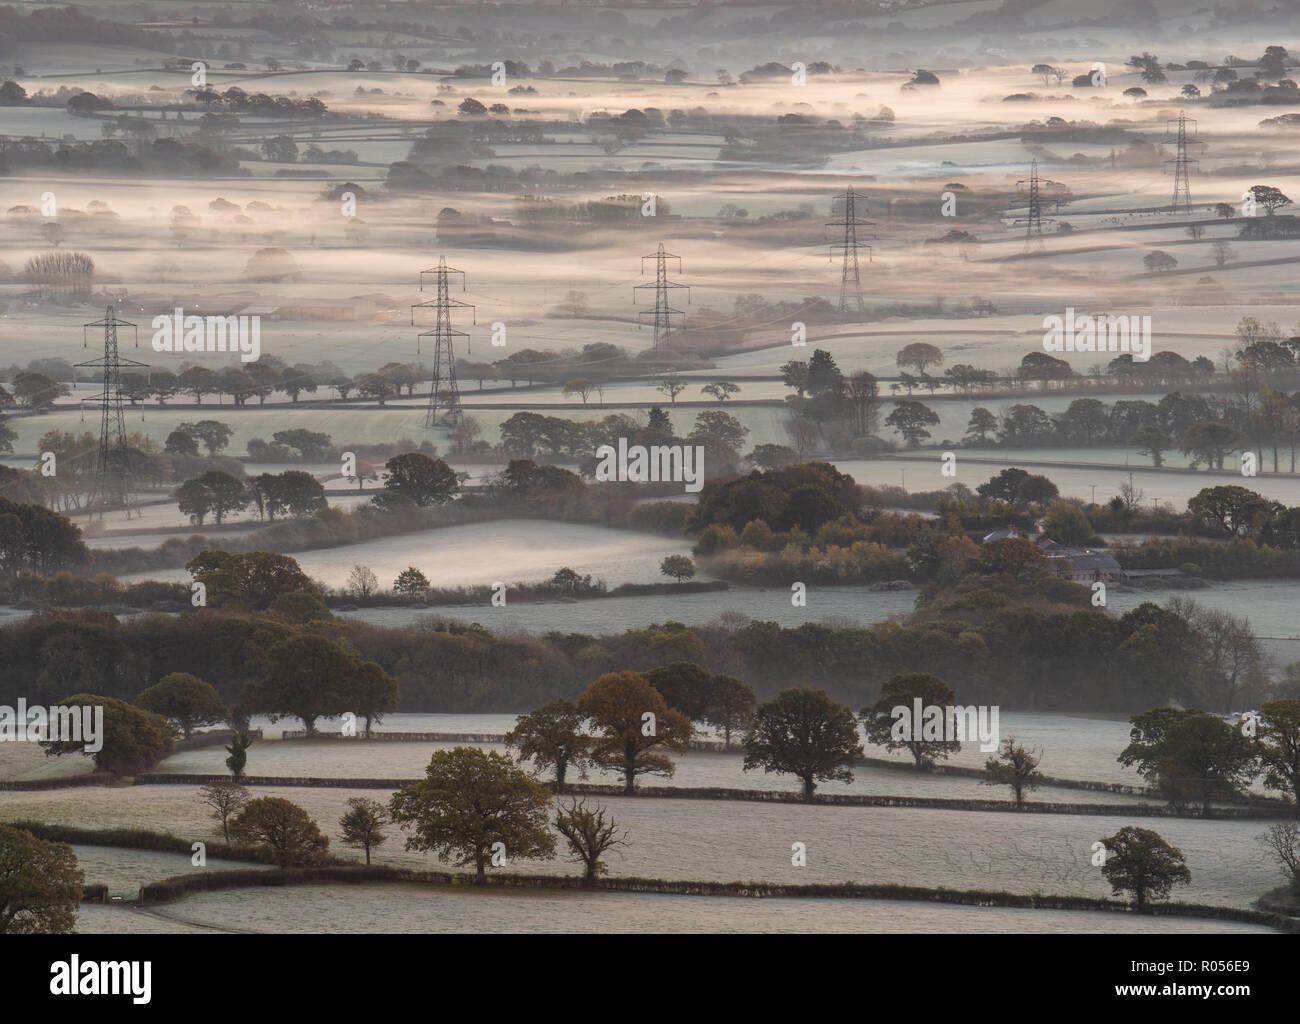 Marshwood, Dorset, UK. 2nd November 2018.  UK Weather:   A Layer of crisp white frost coats the fields in the Marshwood Vale as temperatures plummet in West Dorset. Credit: Celia McMahon/Alamy Live News - Stock Image